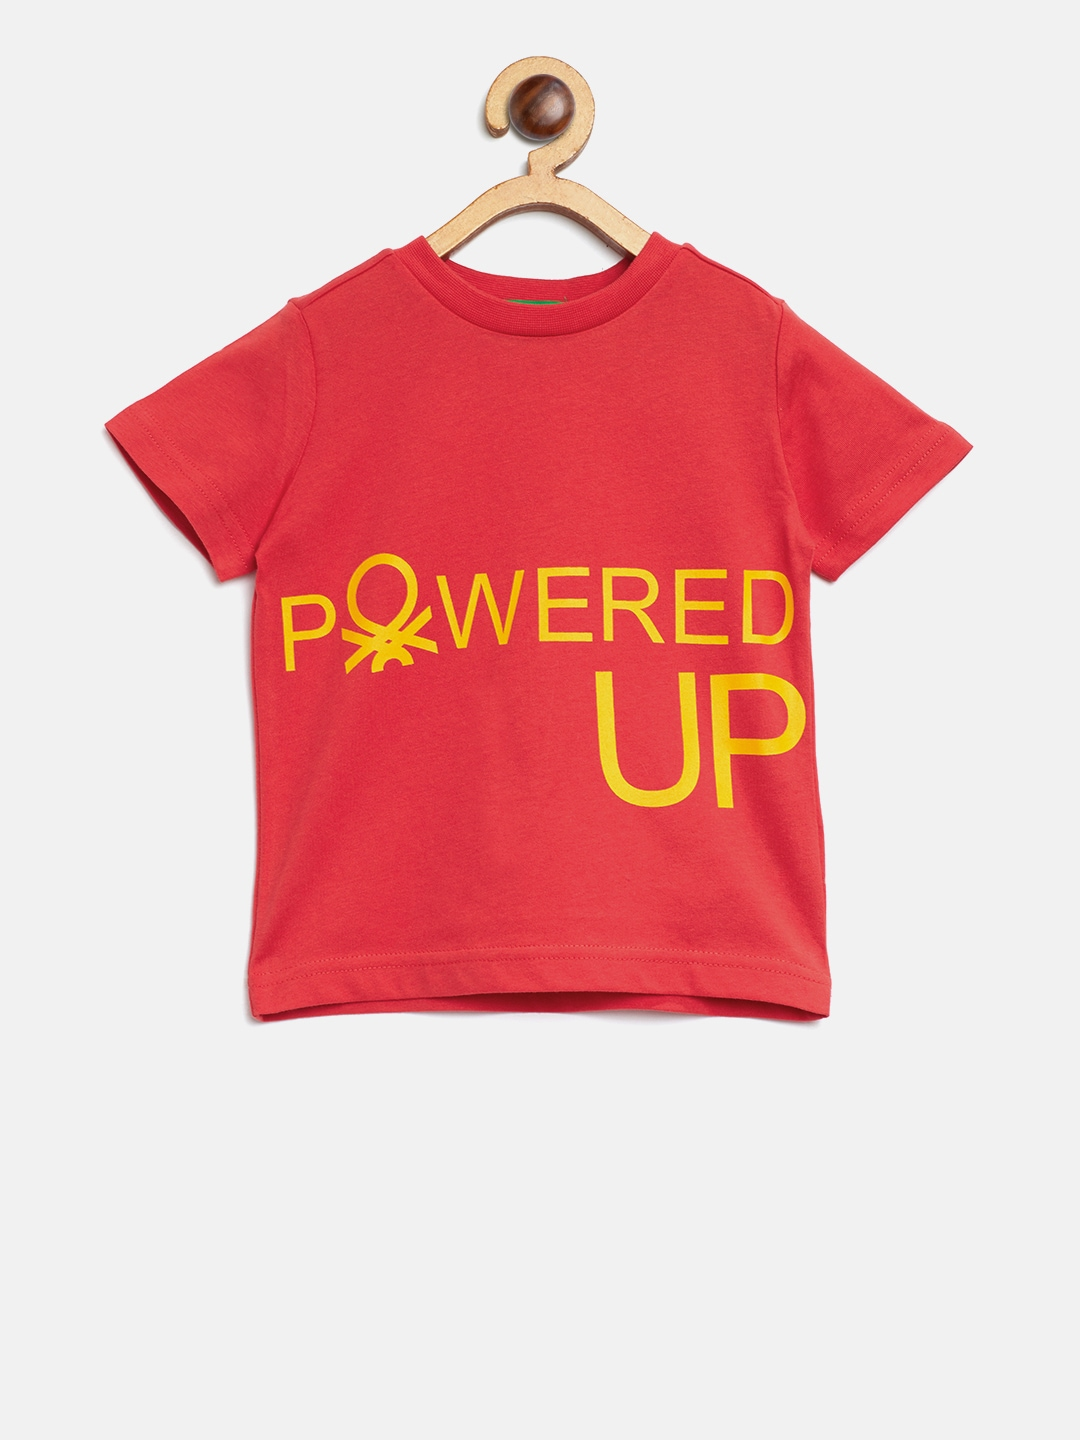 87ef17944 Kids T shirts - Buy T shirts for Kids Online in India Myntra